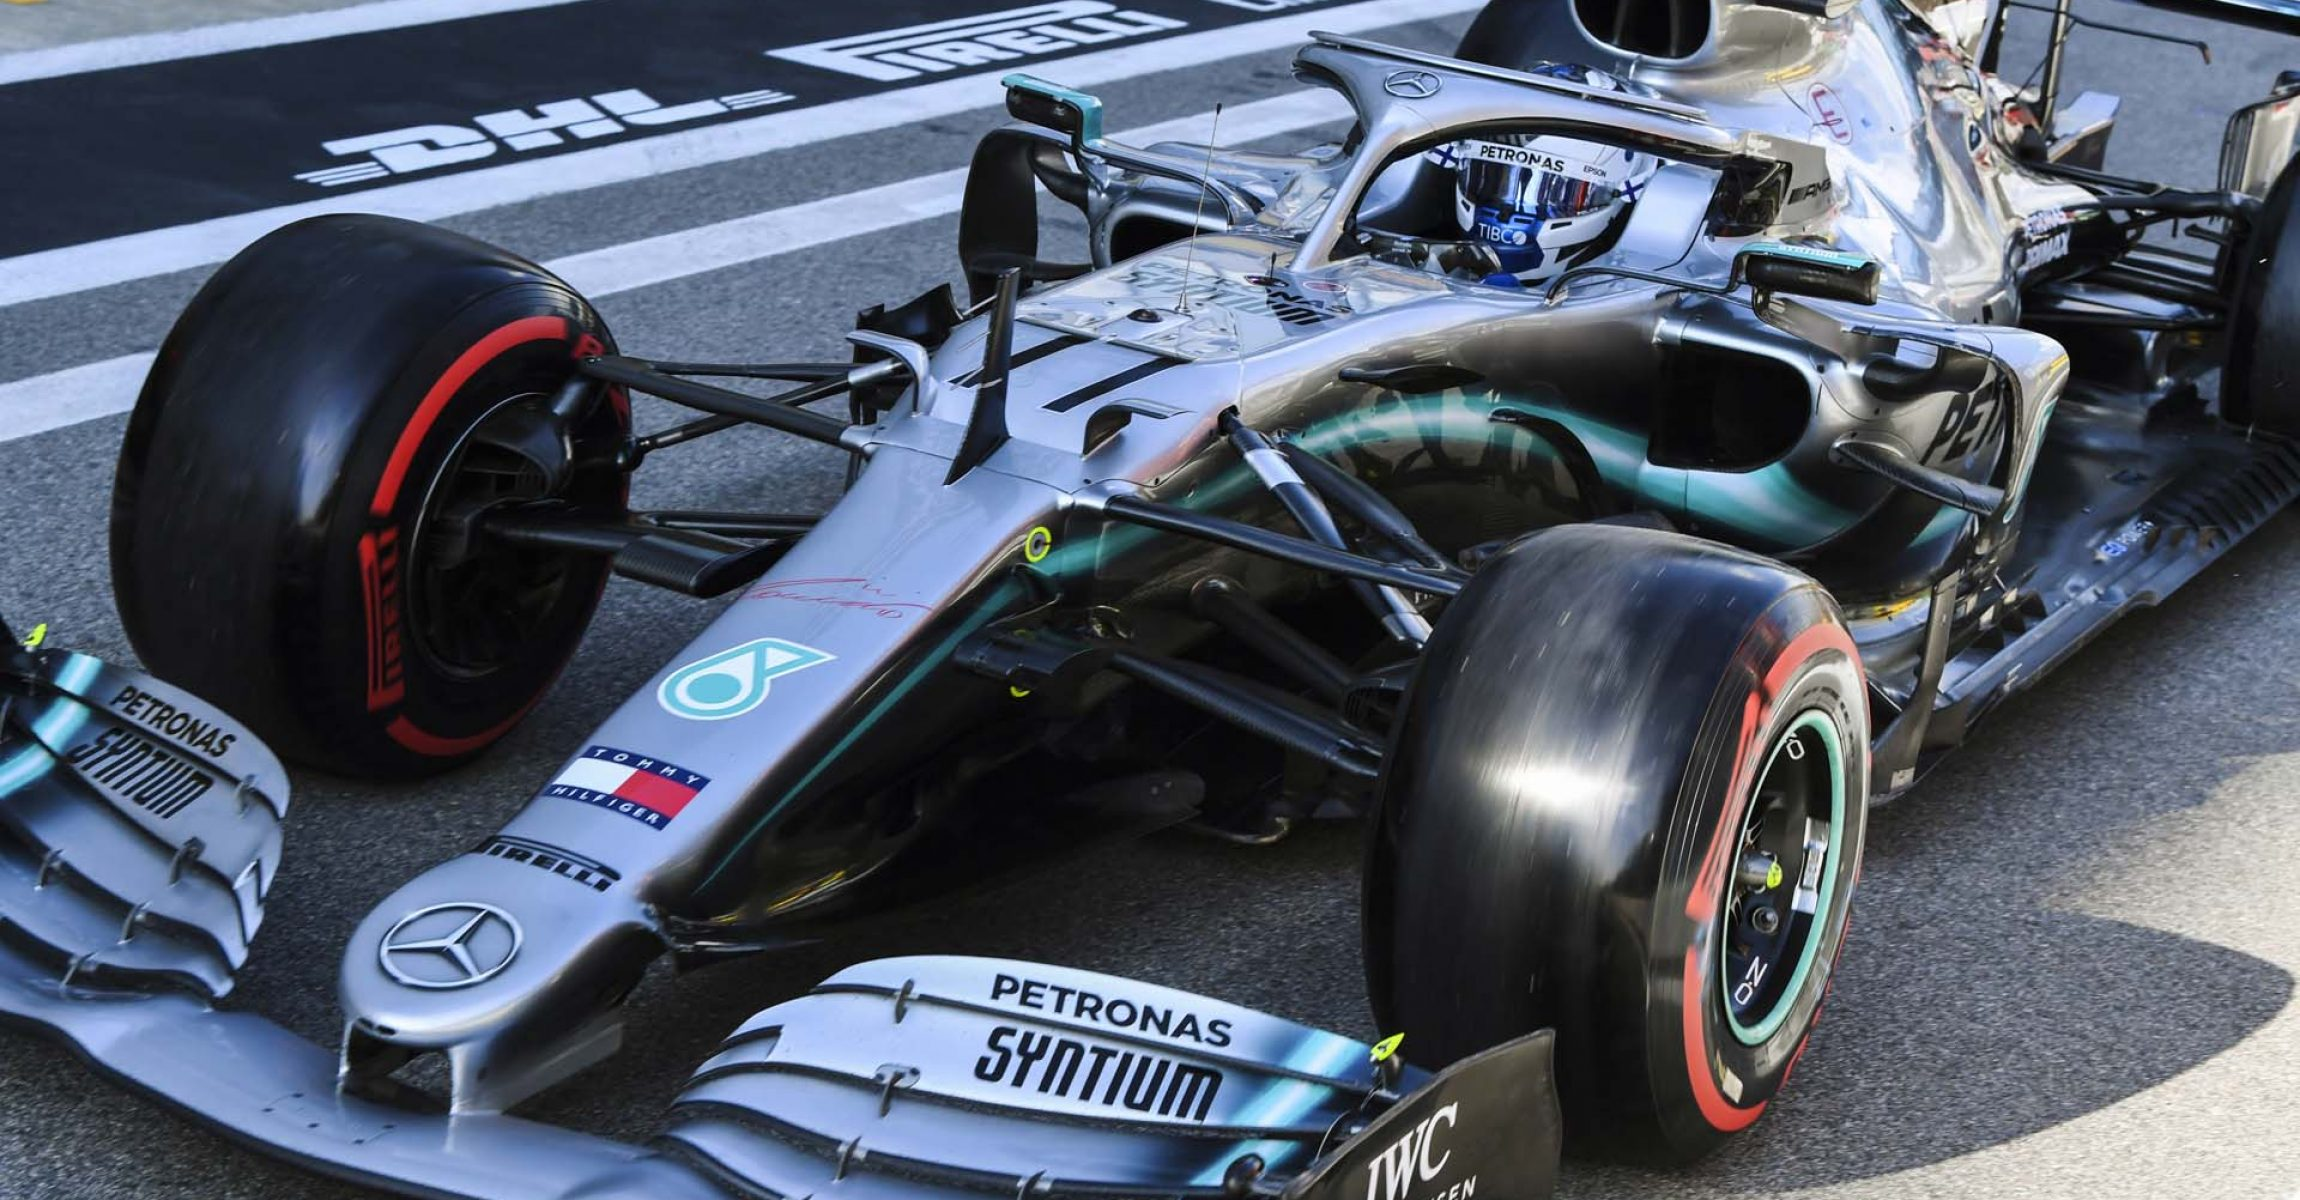 SOCHI AUTODROM, RUSSIAN FEDERATION - SEPTEMBER 28: Valtteri Bottas, Mercedes AMG W10 during the Russian GP at Sochi Autodrom on September 28, 2019 in Sochi Autodrom, Russian Federation. (Photo by Mark Sutton / LAT Images)